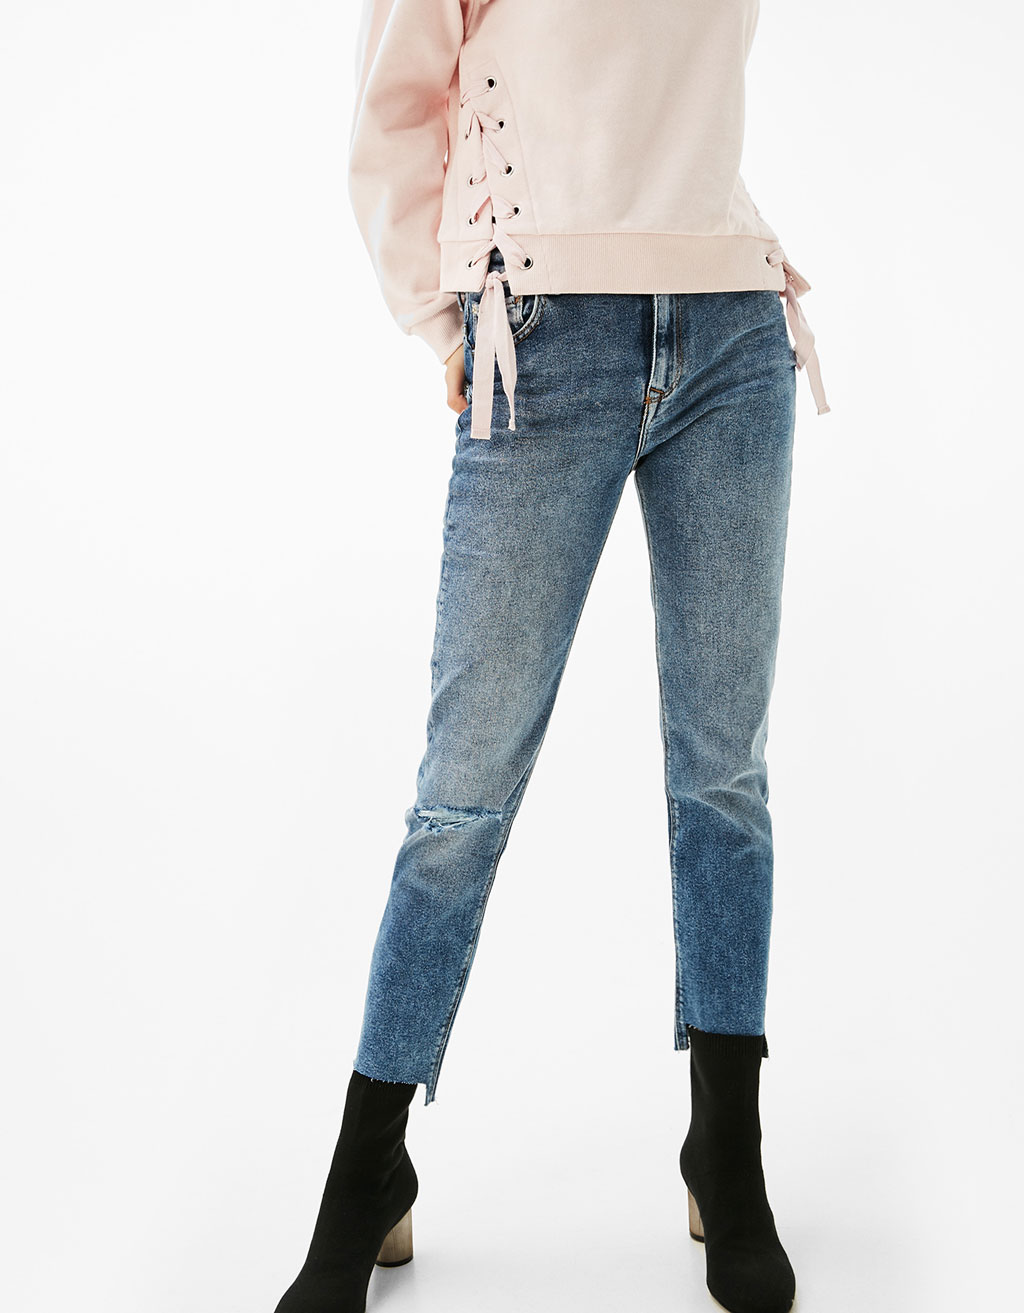 High Waist Jeans with asymmetric cuffs